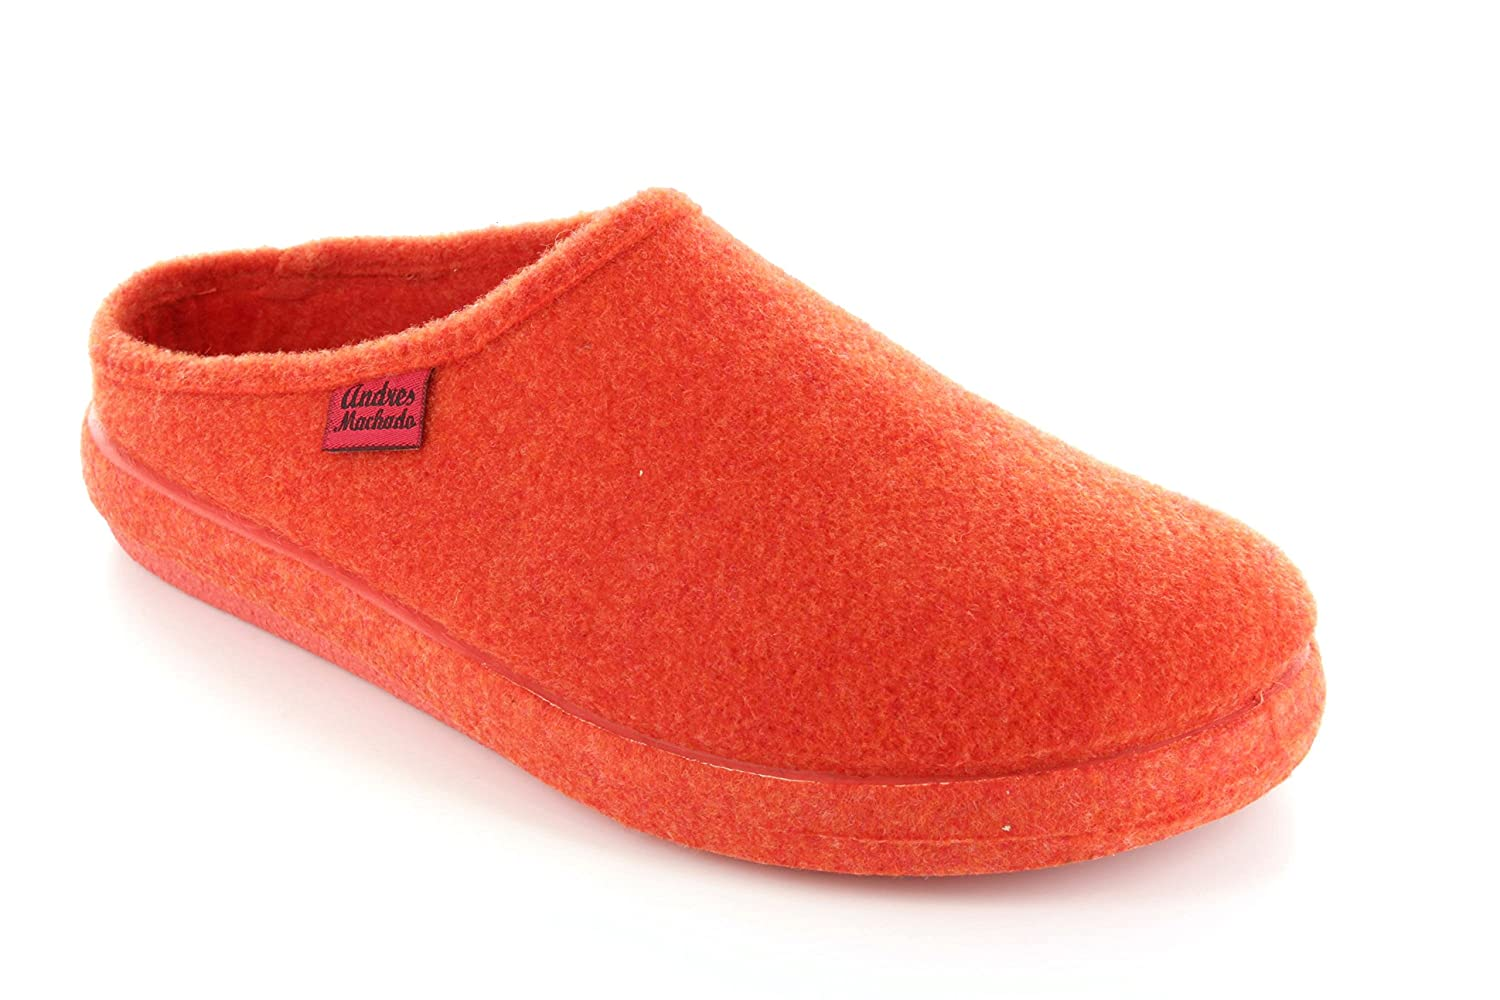 Andres Machado.AM001.AUTHÉNTIQUES chaussons MADE IN chaussons SPAIN Unisex.Petites et Pointures. B078HPXSC4 Grandes Pointures. 26/50 Orange f332b5d - therethere.space